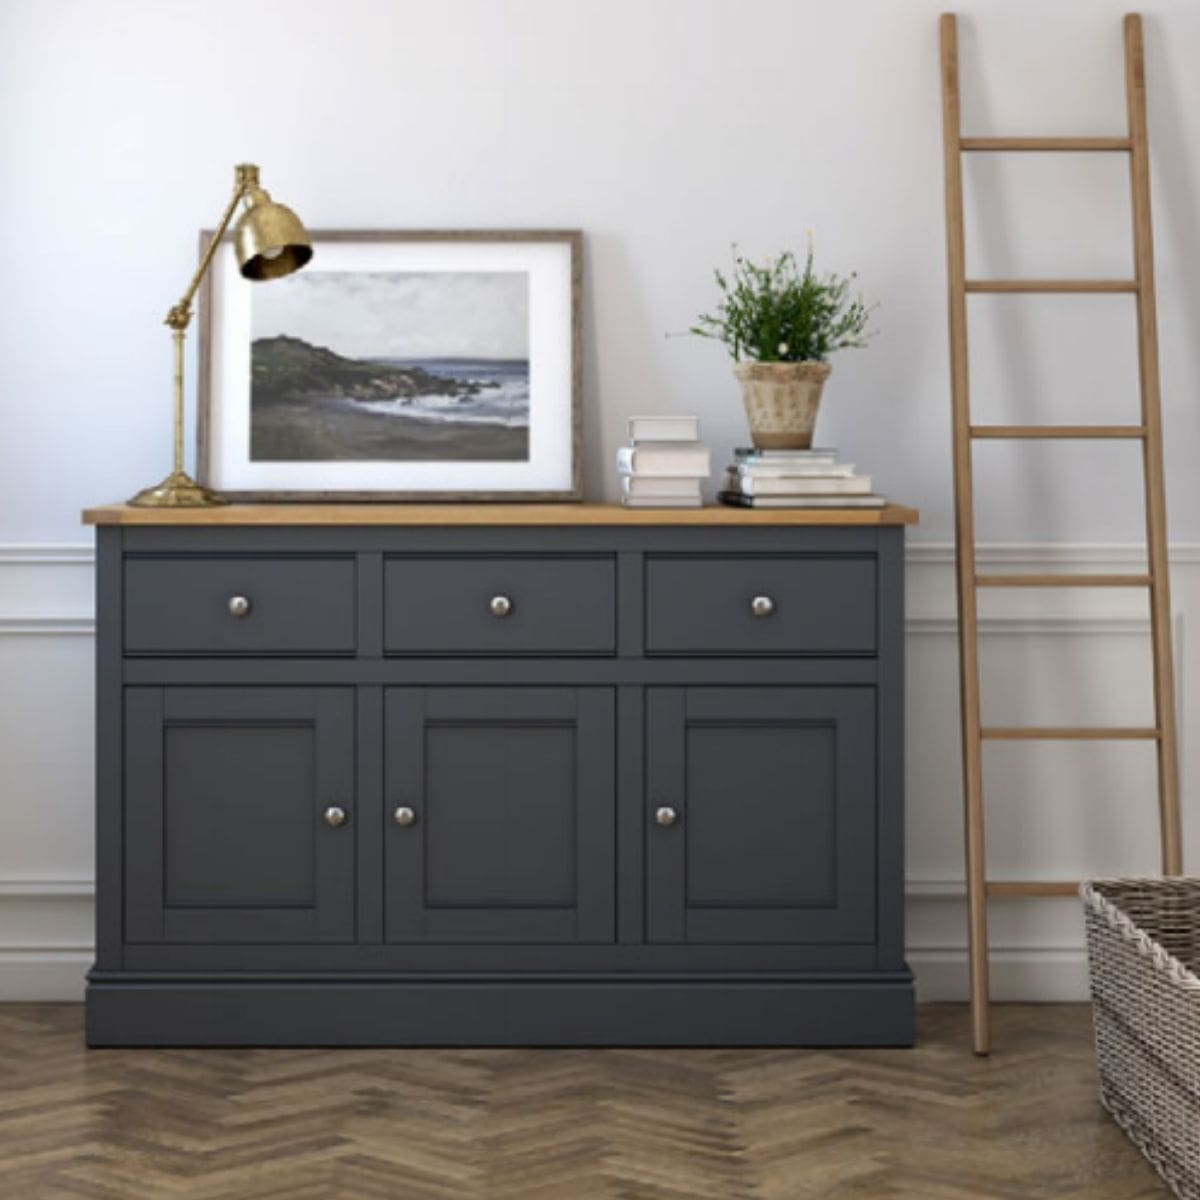 Charlie Extra Large Charcoal and Oak Sideboard